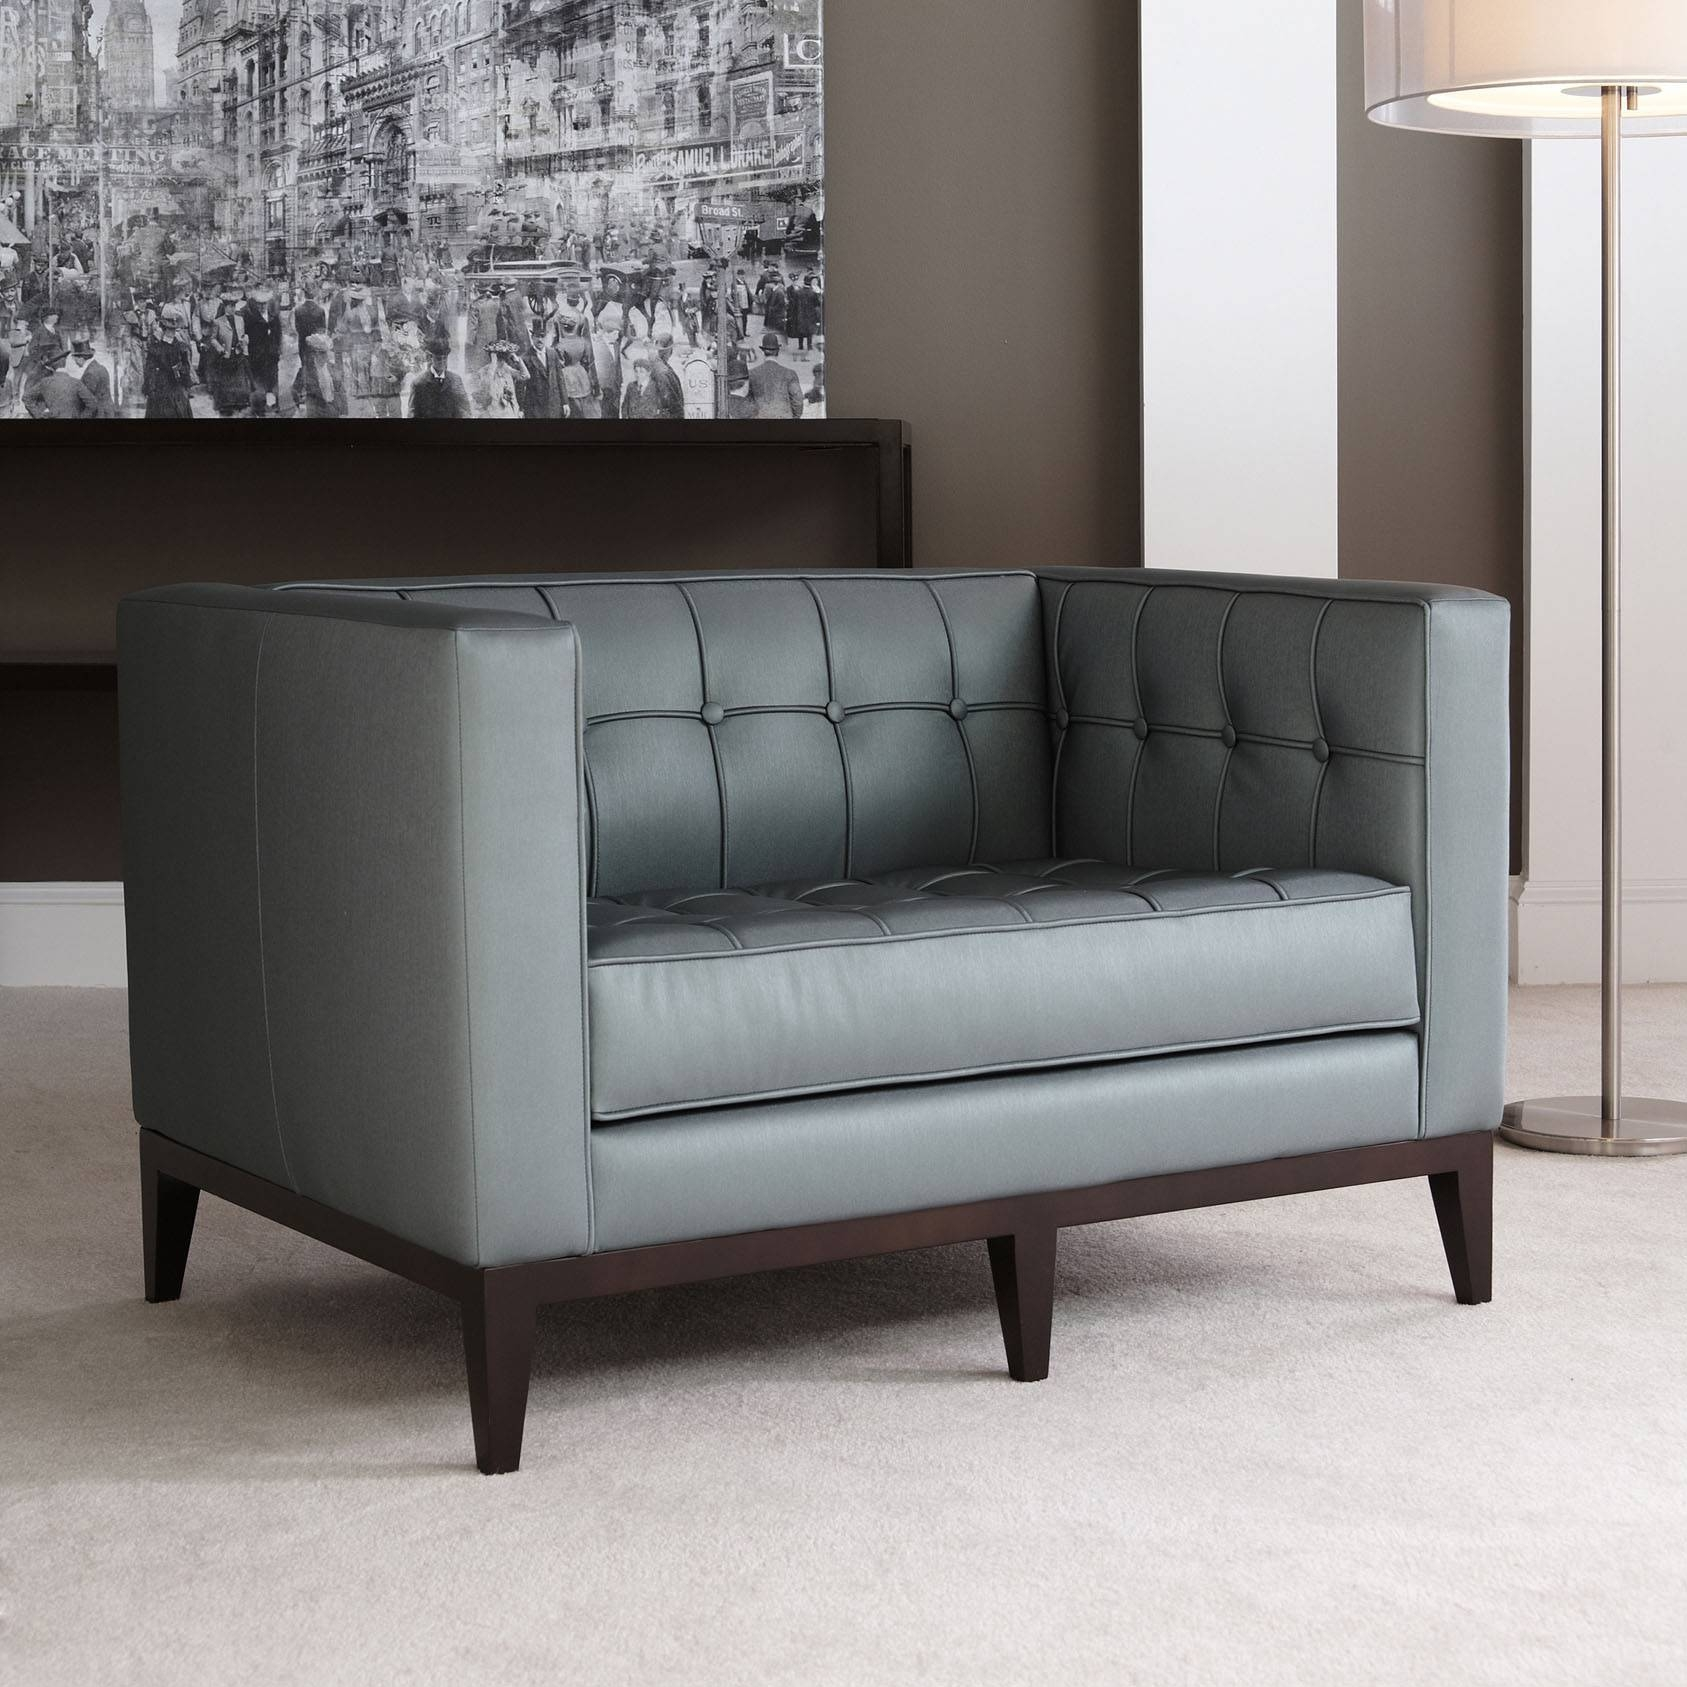 American Leather Luxe Sofa & Ottoman | Modern Design inside Luxe Sofas (Image 2 of 15)